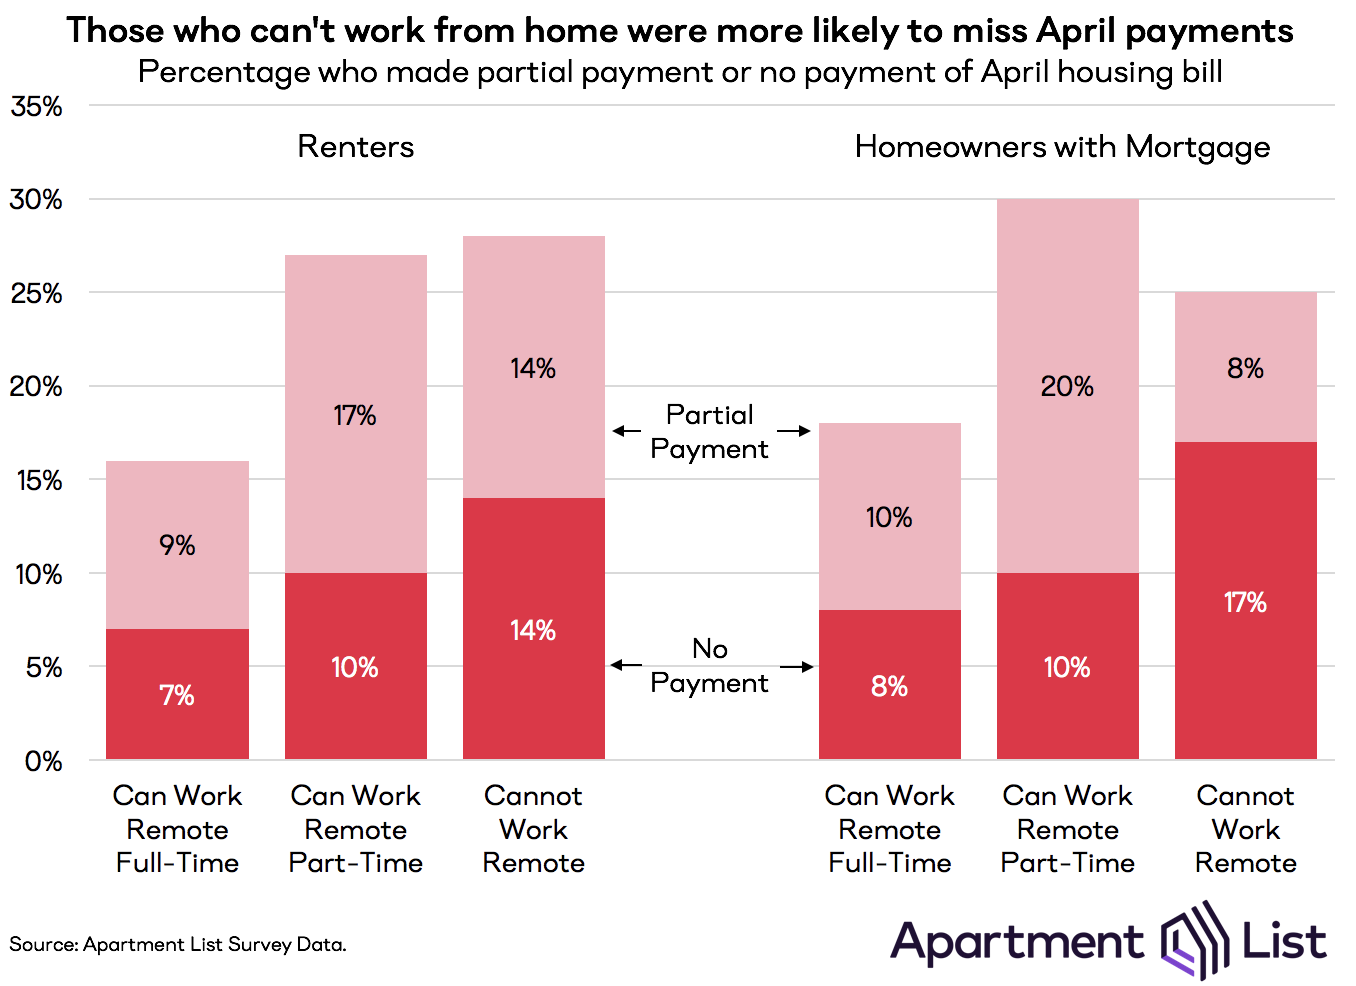 Chart showing that remote workers were less likely to be delinquent on their April housing payments.